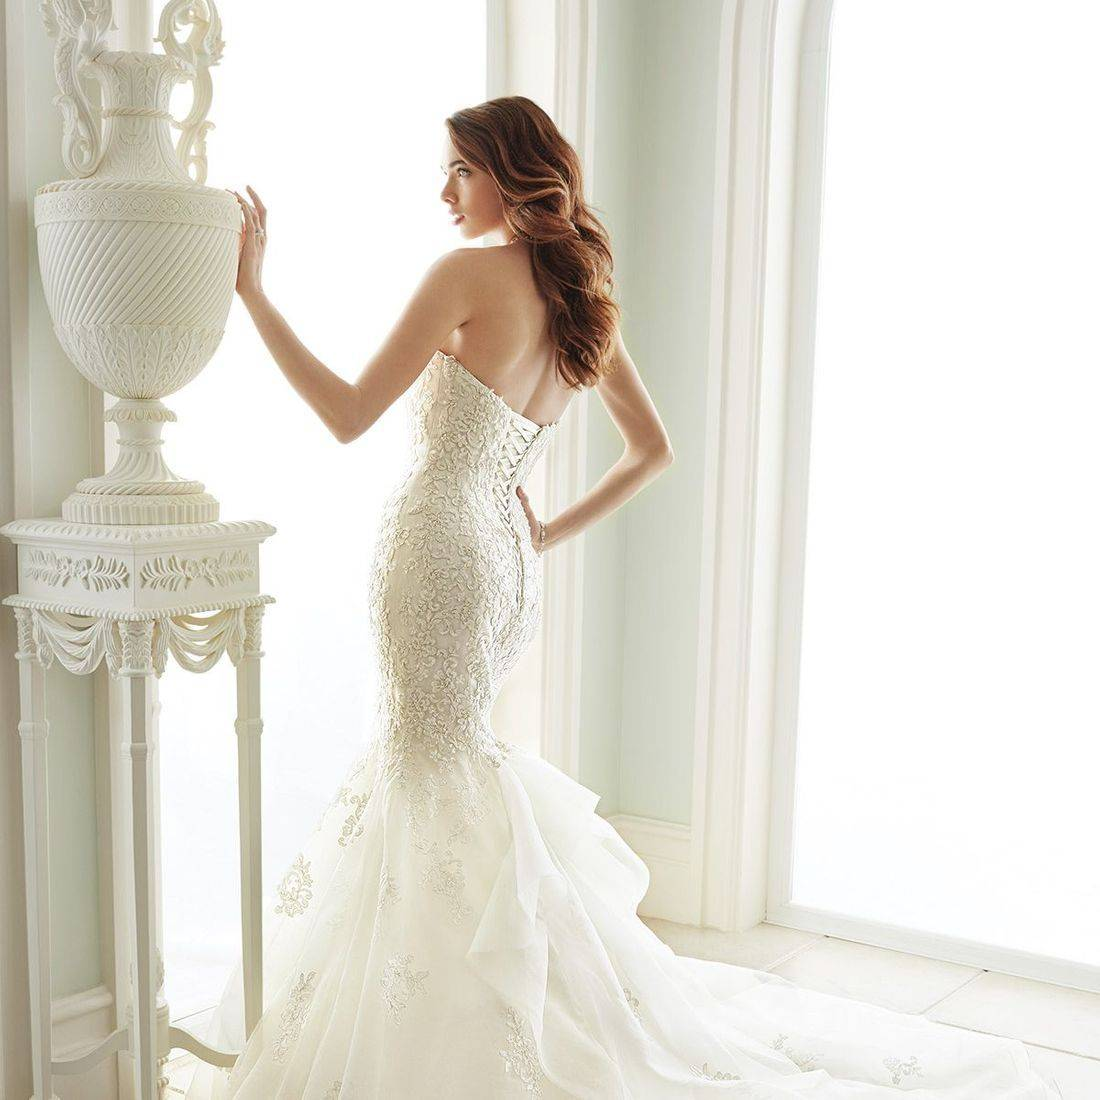 sophia tolli, sophia tolli wedding dress, organza wedding dress, fitted wedding dress, strapless wedding dress, elongated bodice wedding dress, sparkly wedding dress, ruffled wedding dress